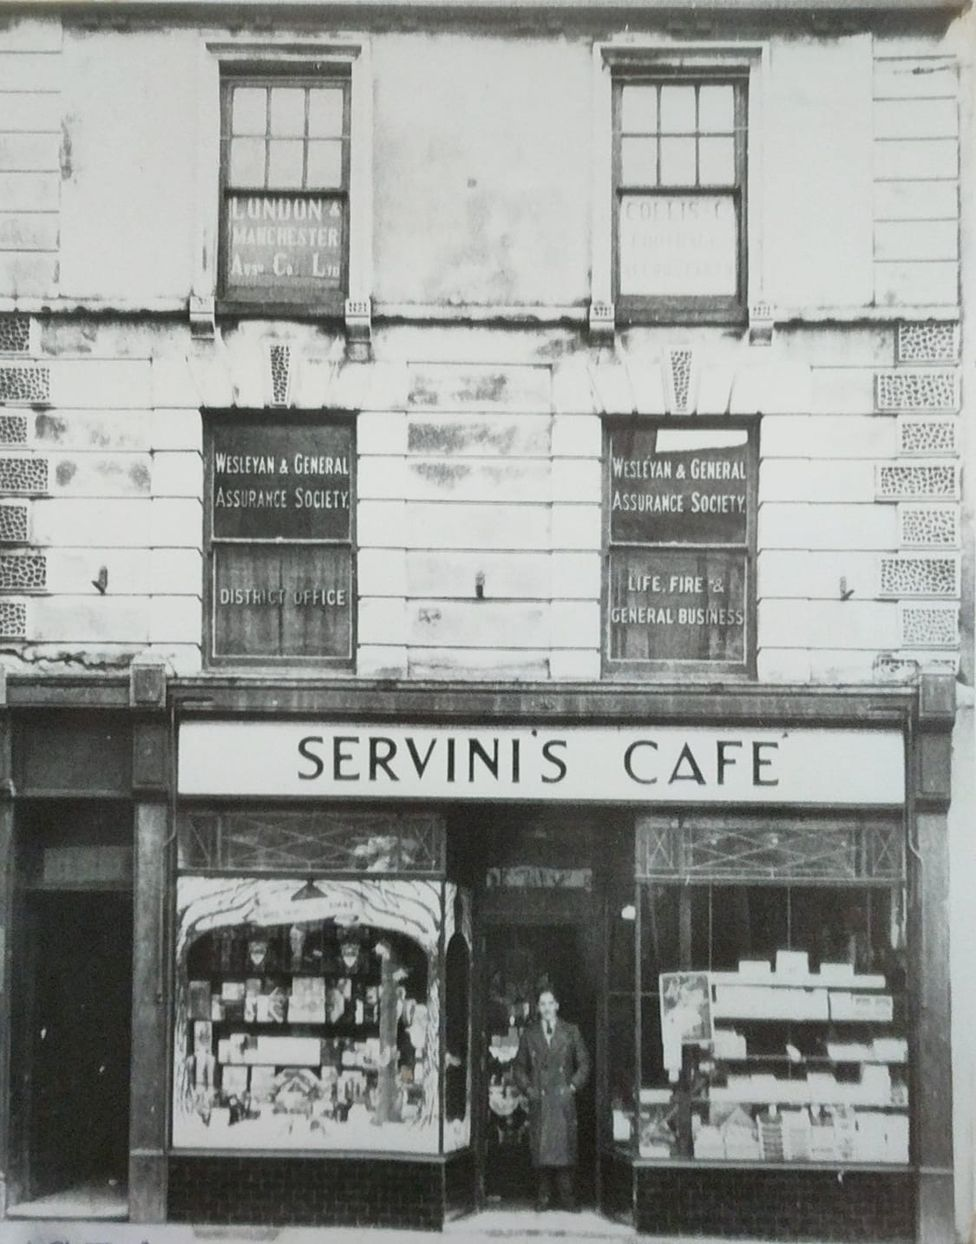 This is what Servini's cafe looked like in 1934, a year after it opened